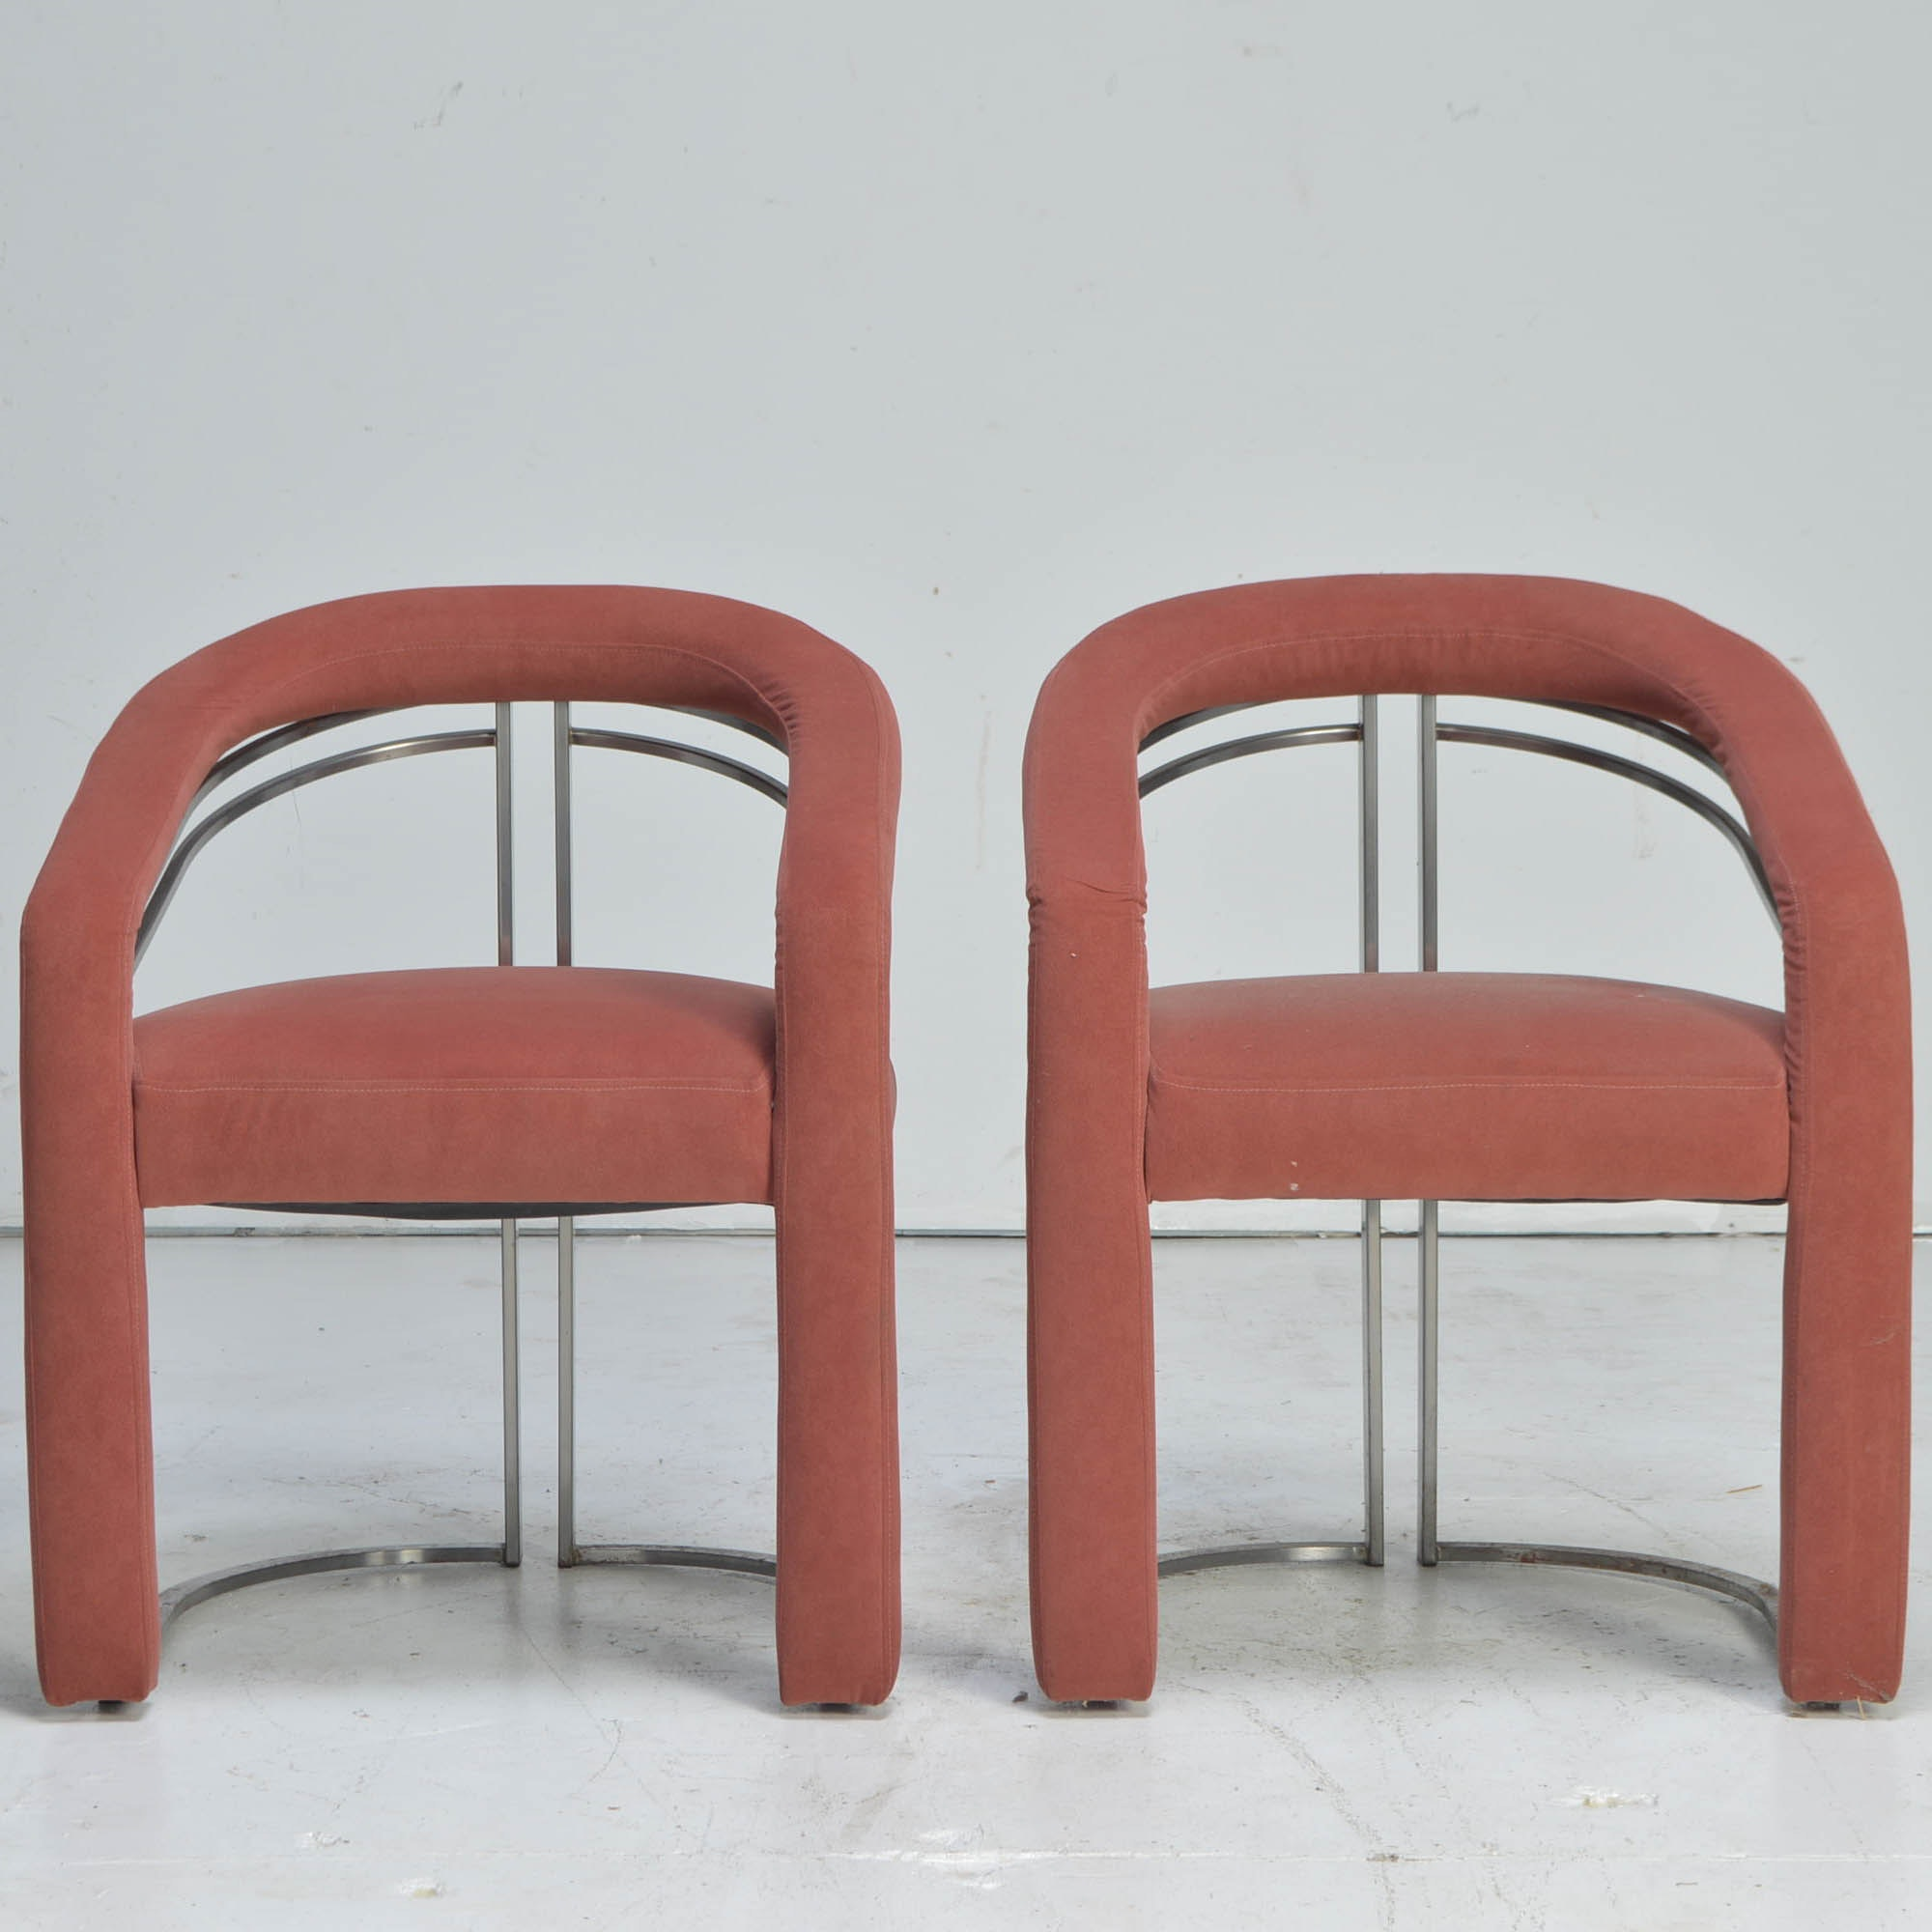 Vintage Deco Revival Club Chairs